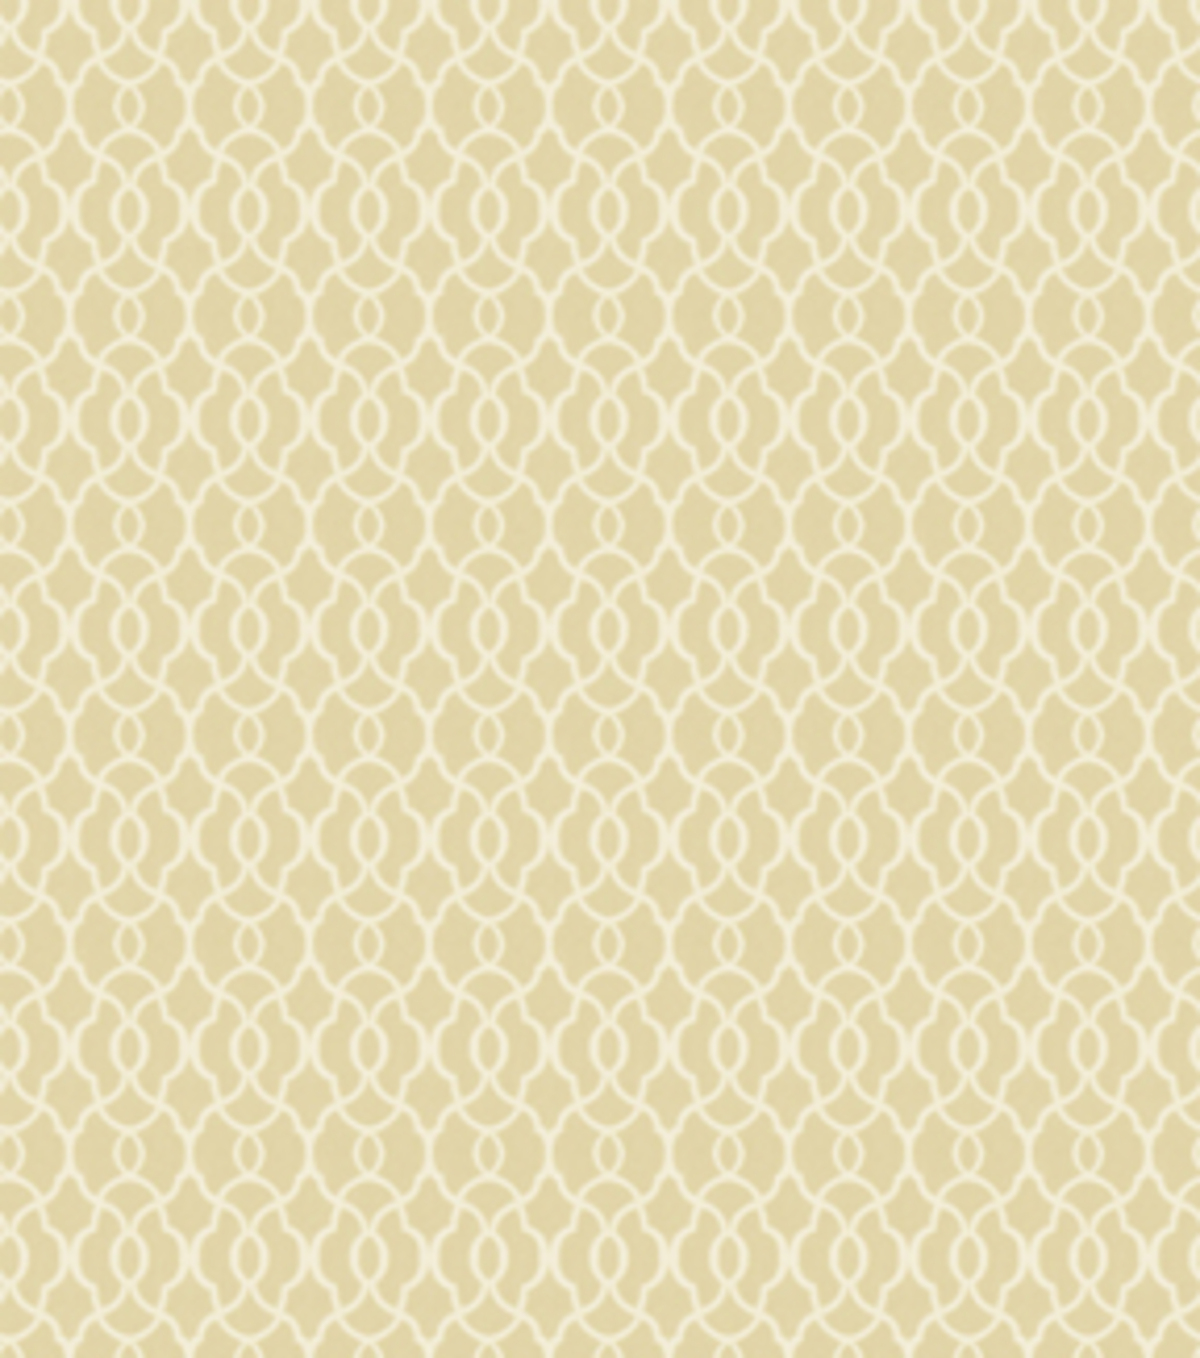 Home Decor 8\u0022x8\u0022 Fabric Swatch-Eaton Square Barometer Barley